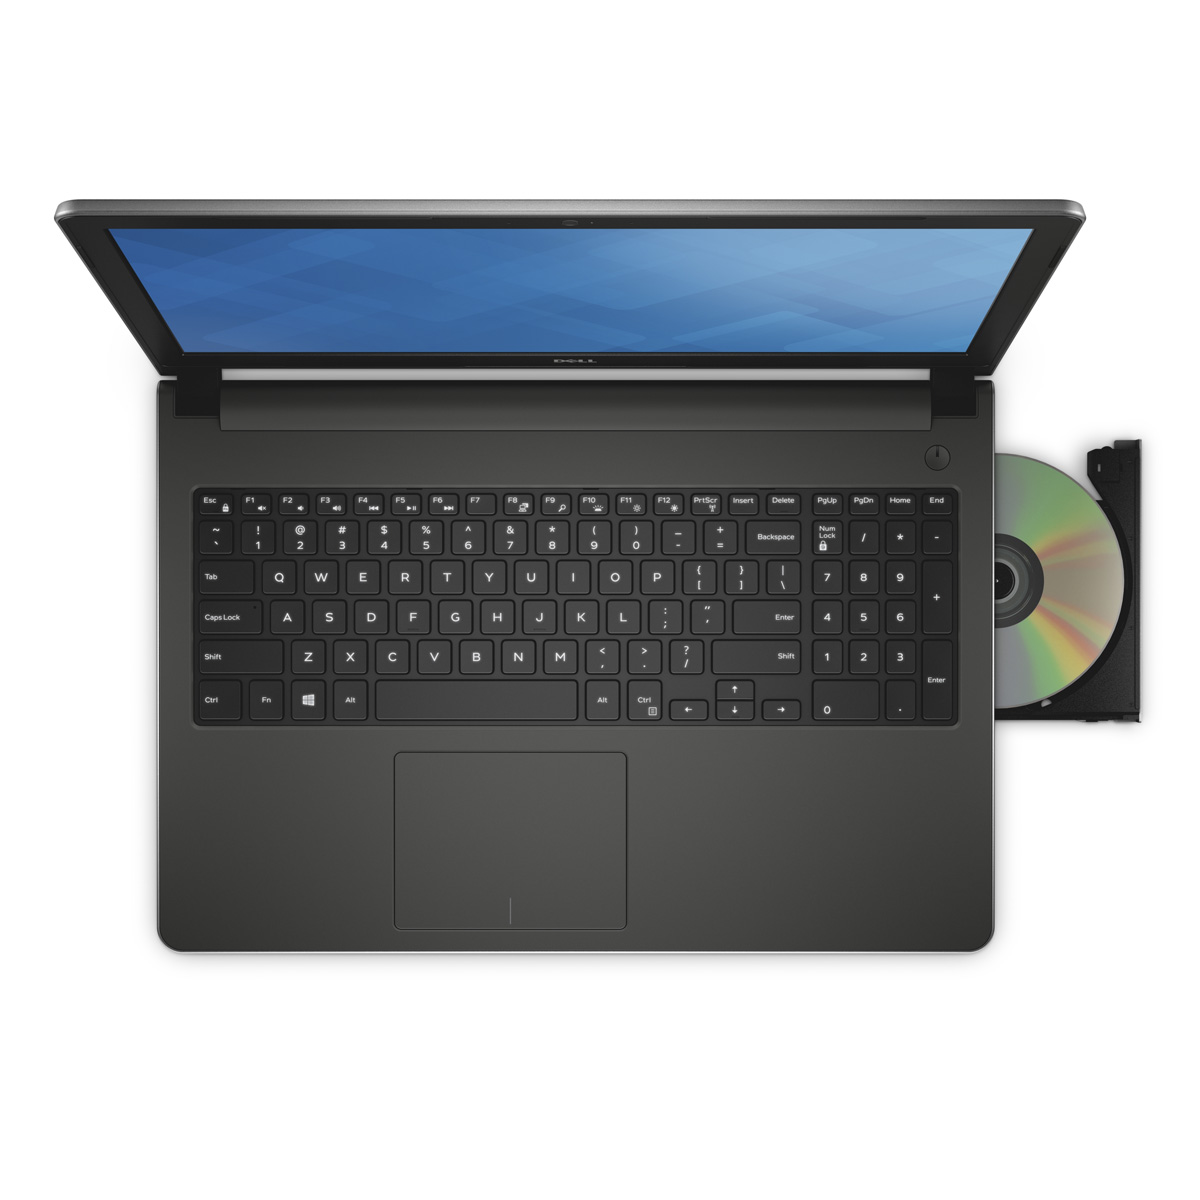 Dell Notebook Inspiron 3567 7th Gen  DELL-3567-I3BLK